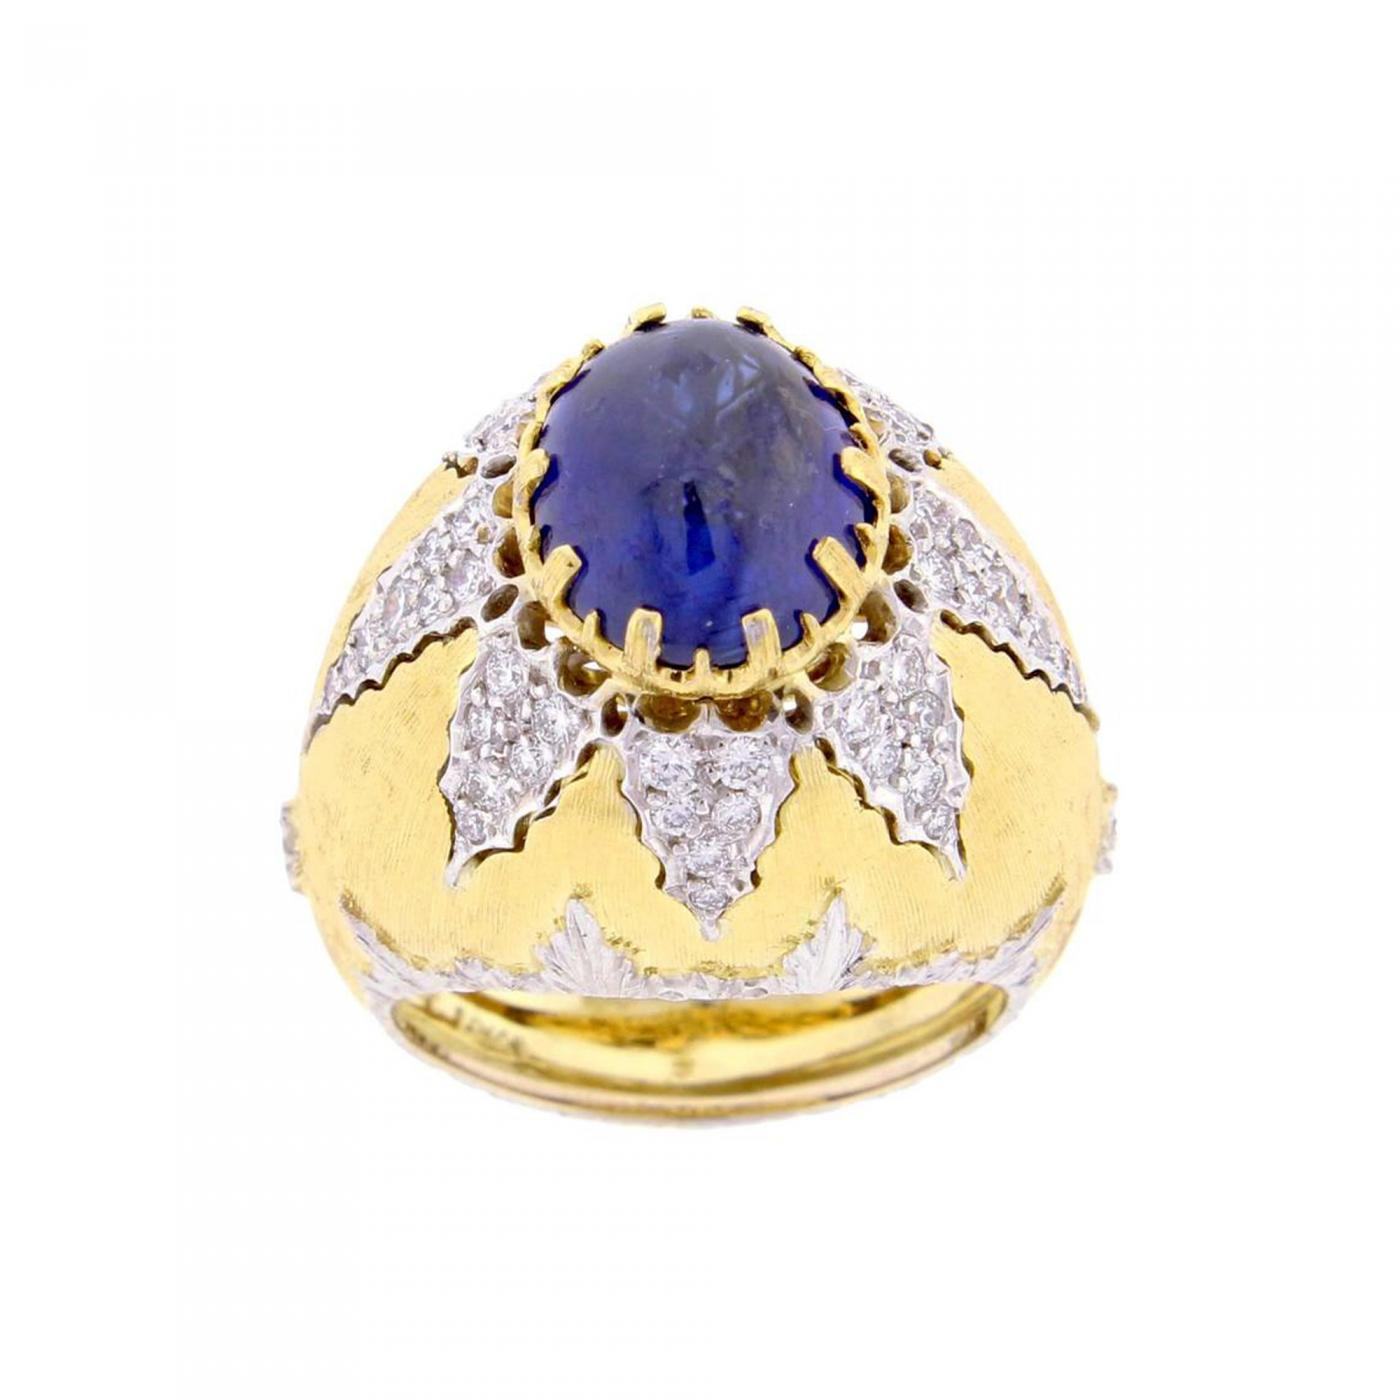 by jewelry wales designer gold crn ring sapphires sapphire product rainbow e with rbw crystal narrow eroded newtwist polly